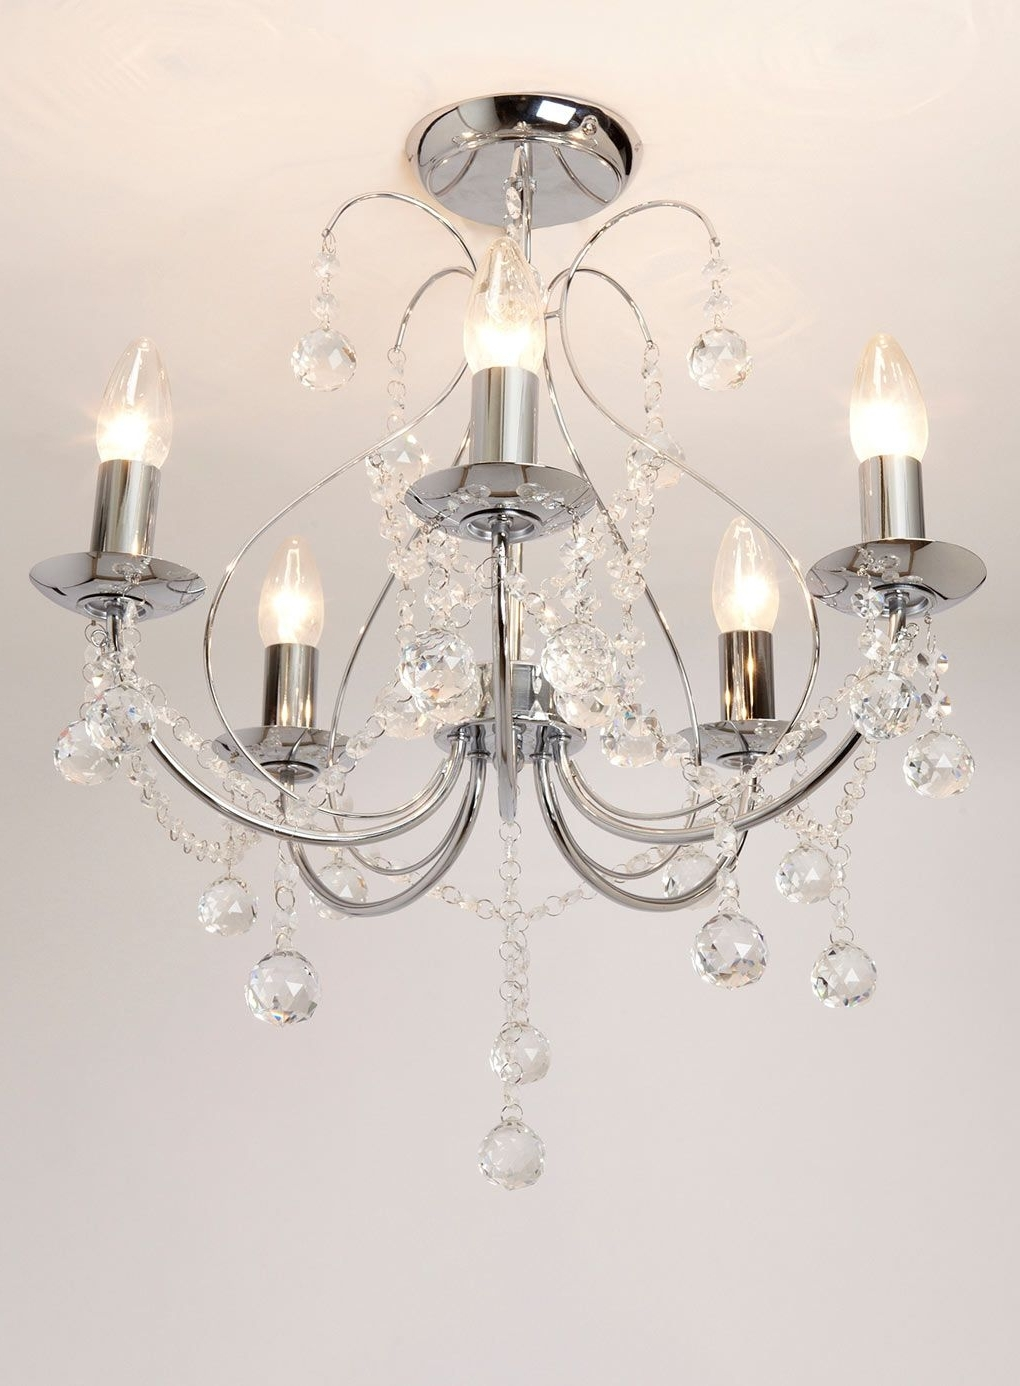 Flush Chandelier With Regard To Famous Living Room Light. (View 11 of 20)